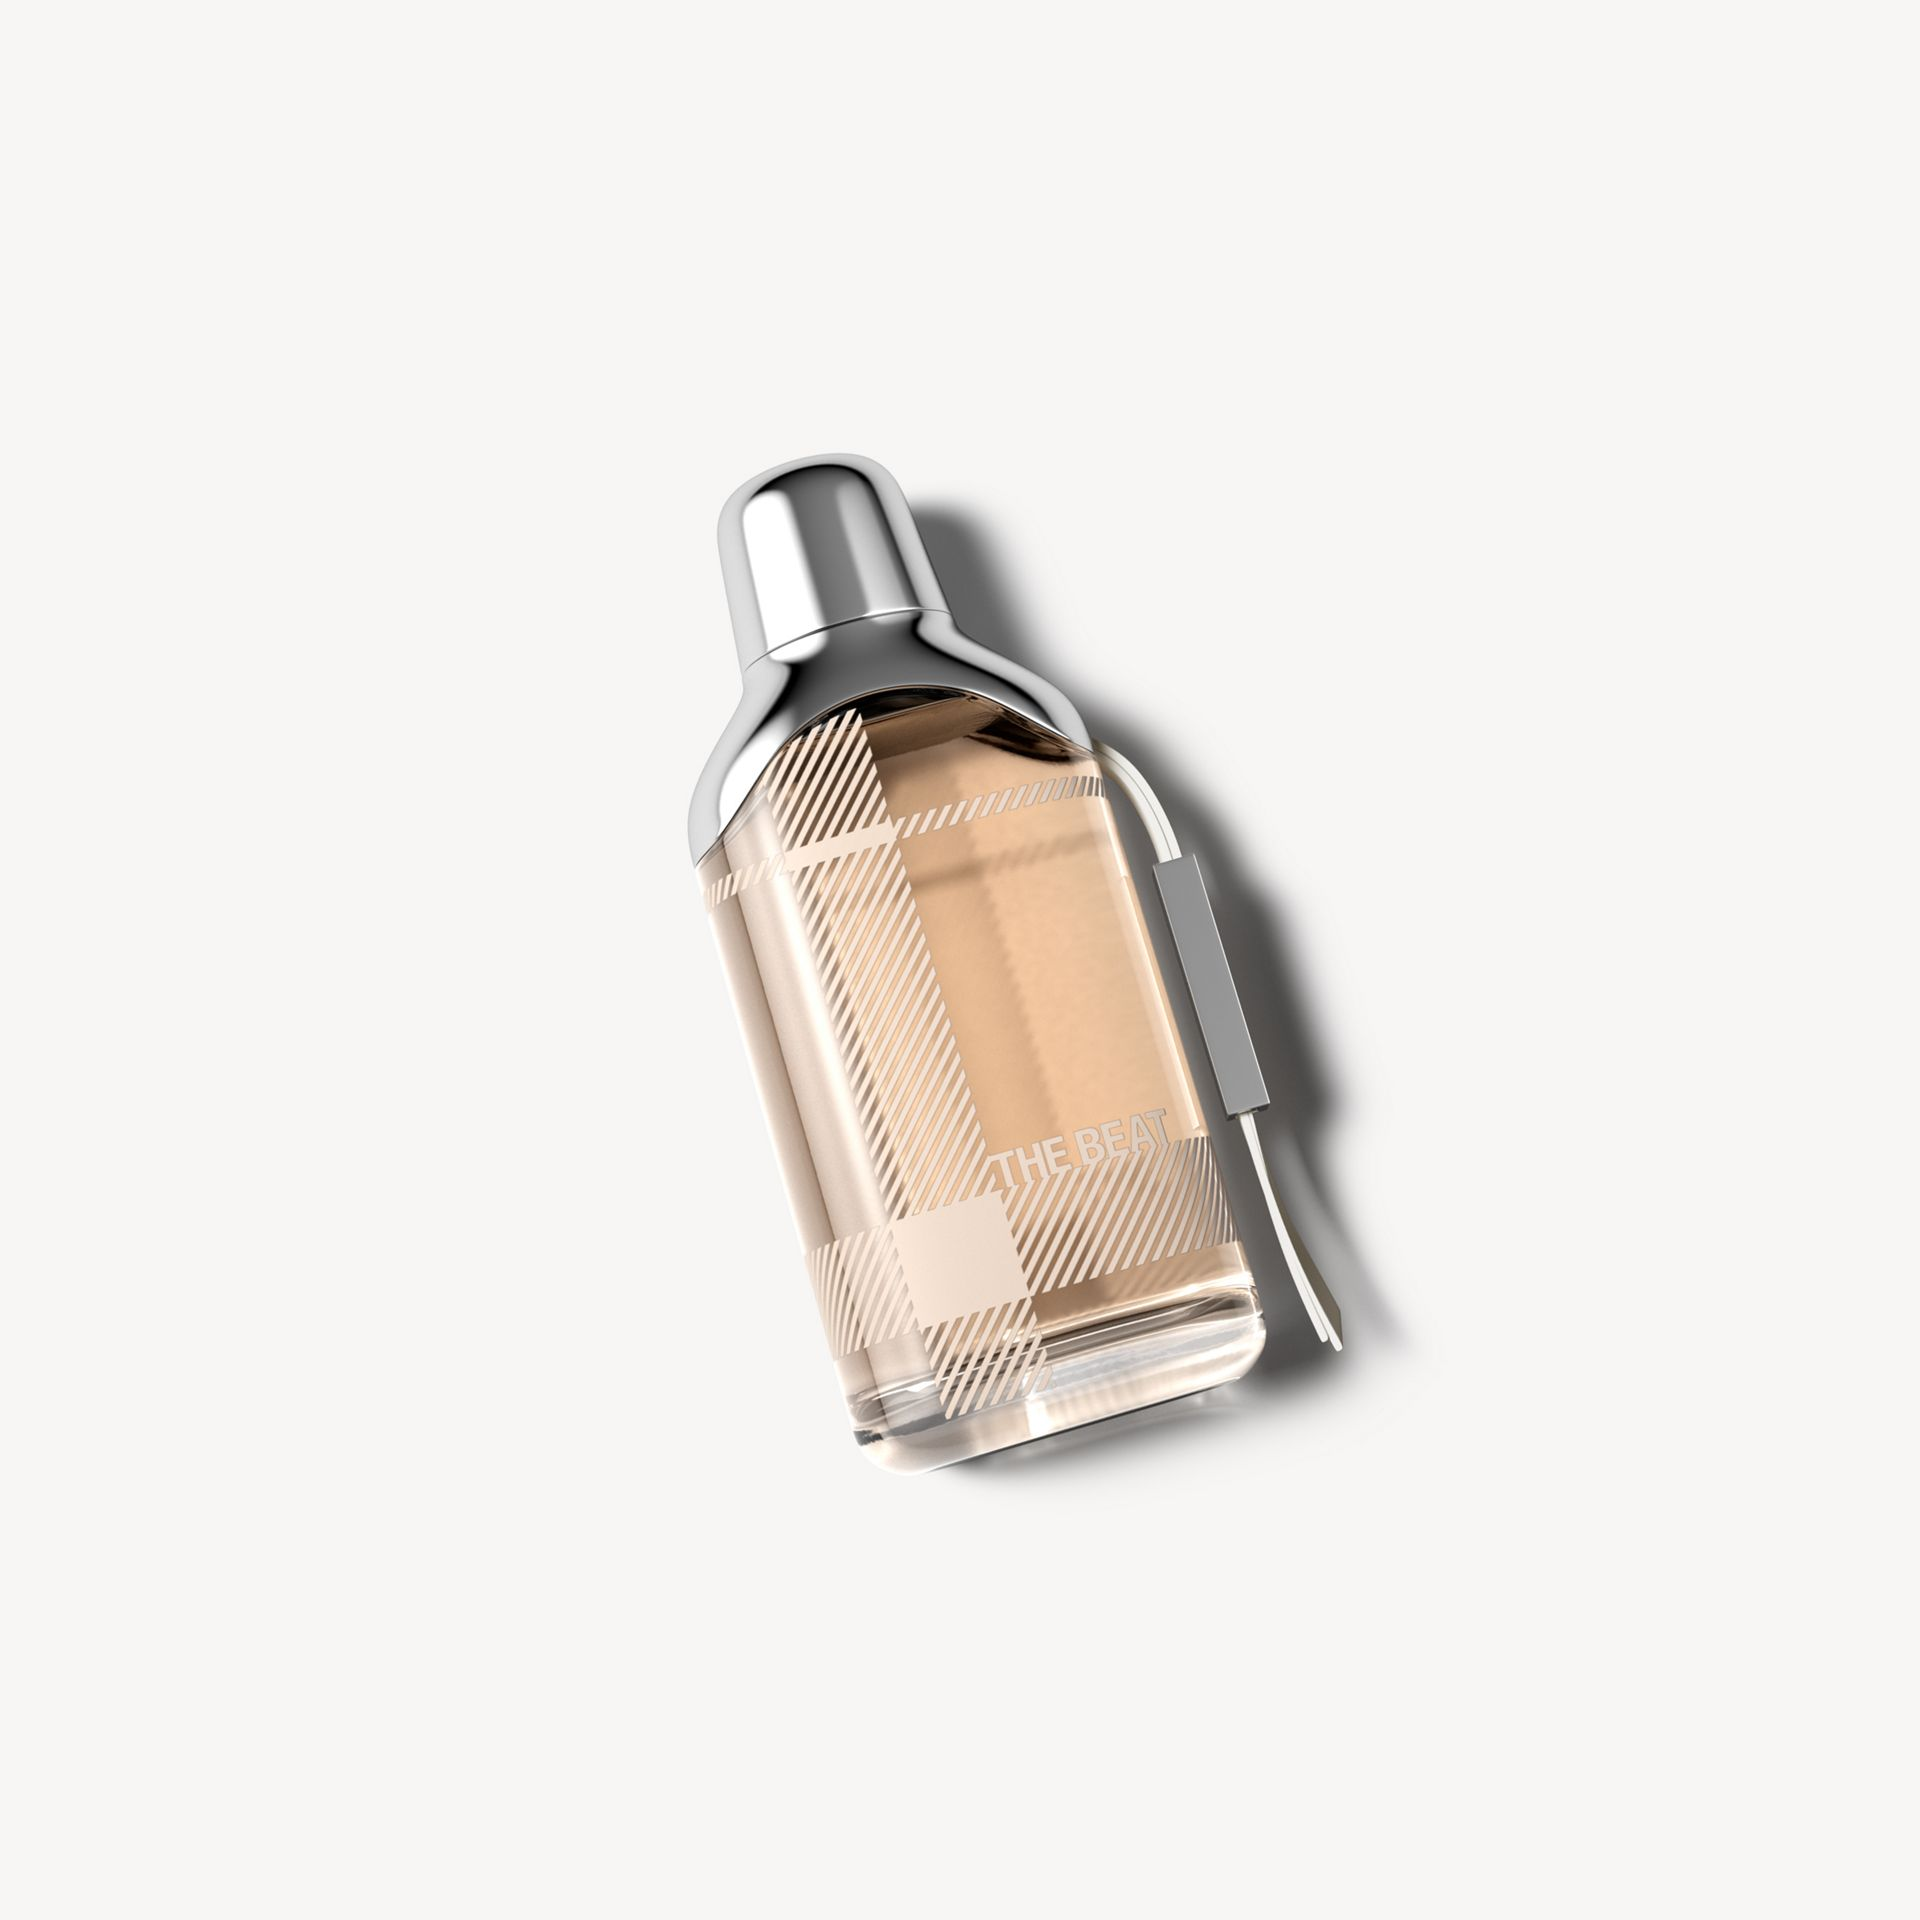 Burberry The Beat Eau de Parfum 50ml - Women | Burberry Canada - gallery image 1